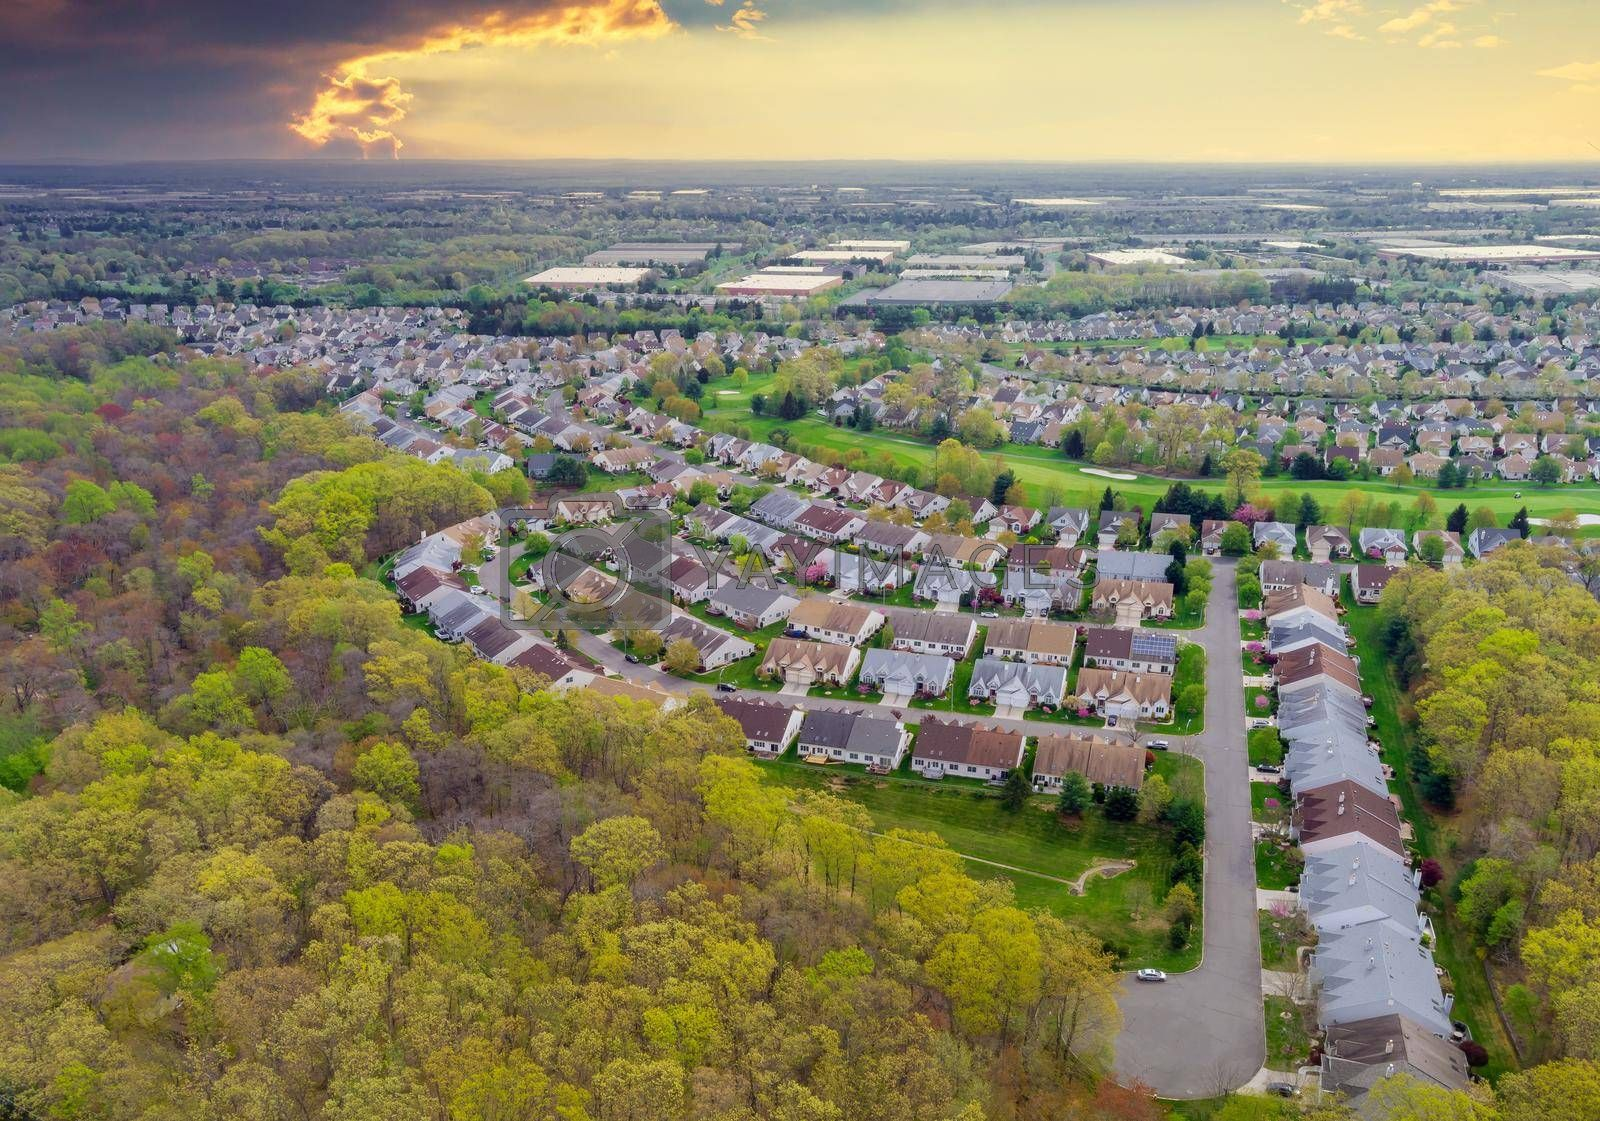 Panorama view of american small town residential houses neighborhood housing development suburban complex